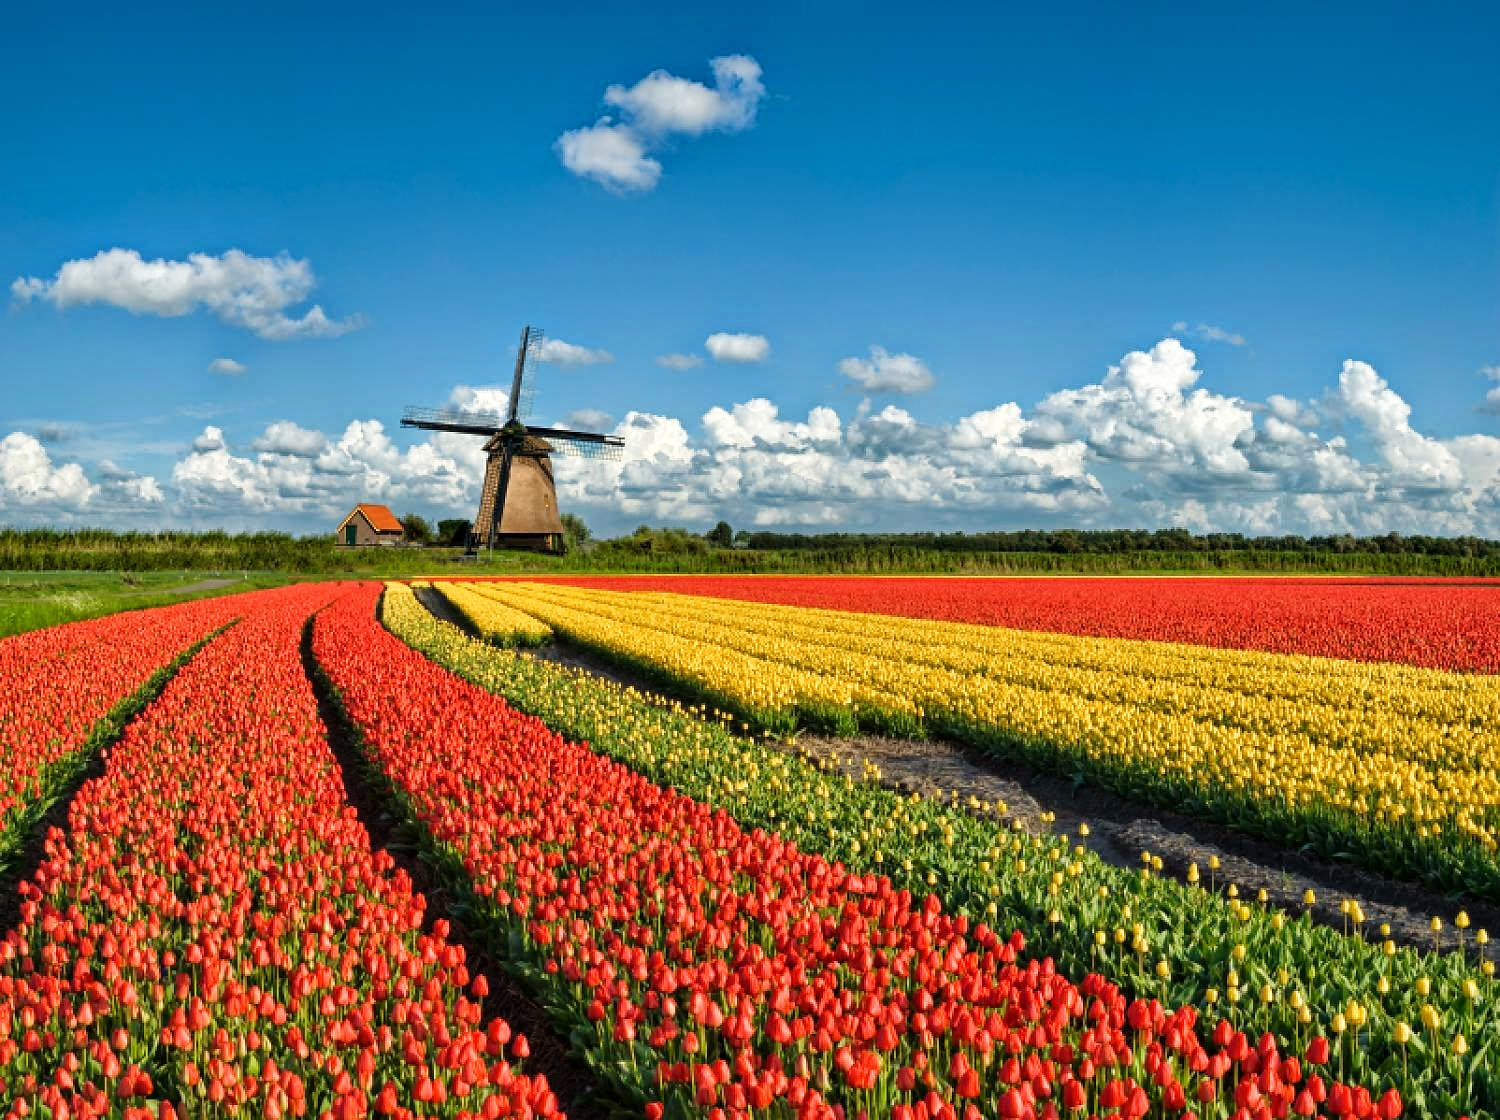 Reason to visit the Netherlands